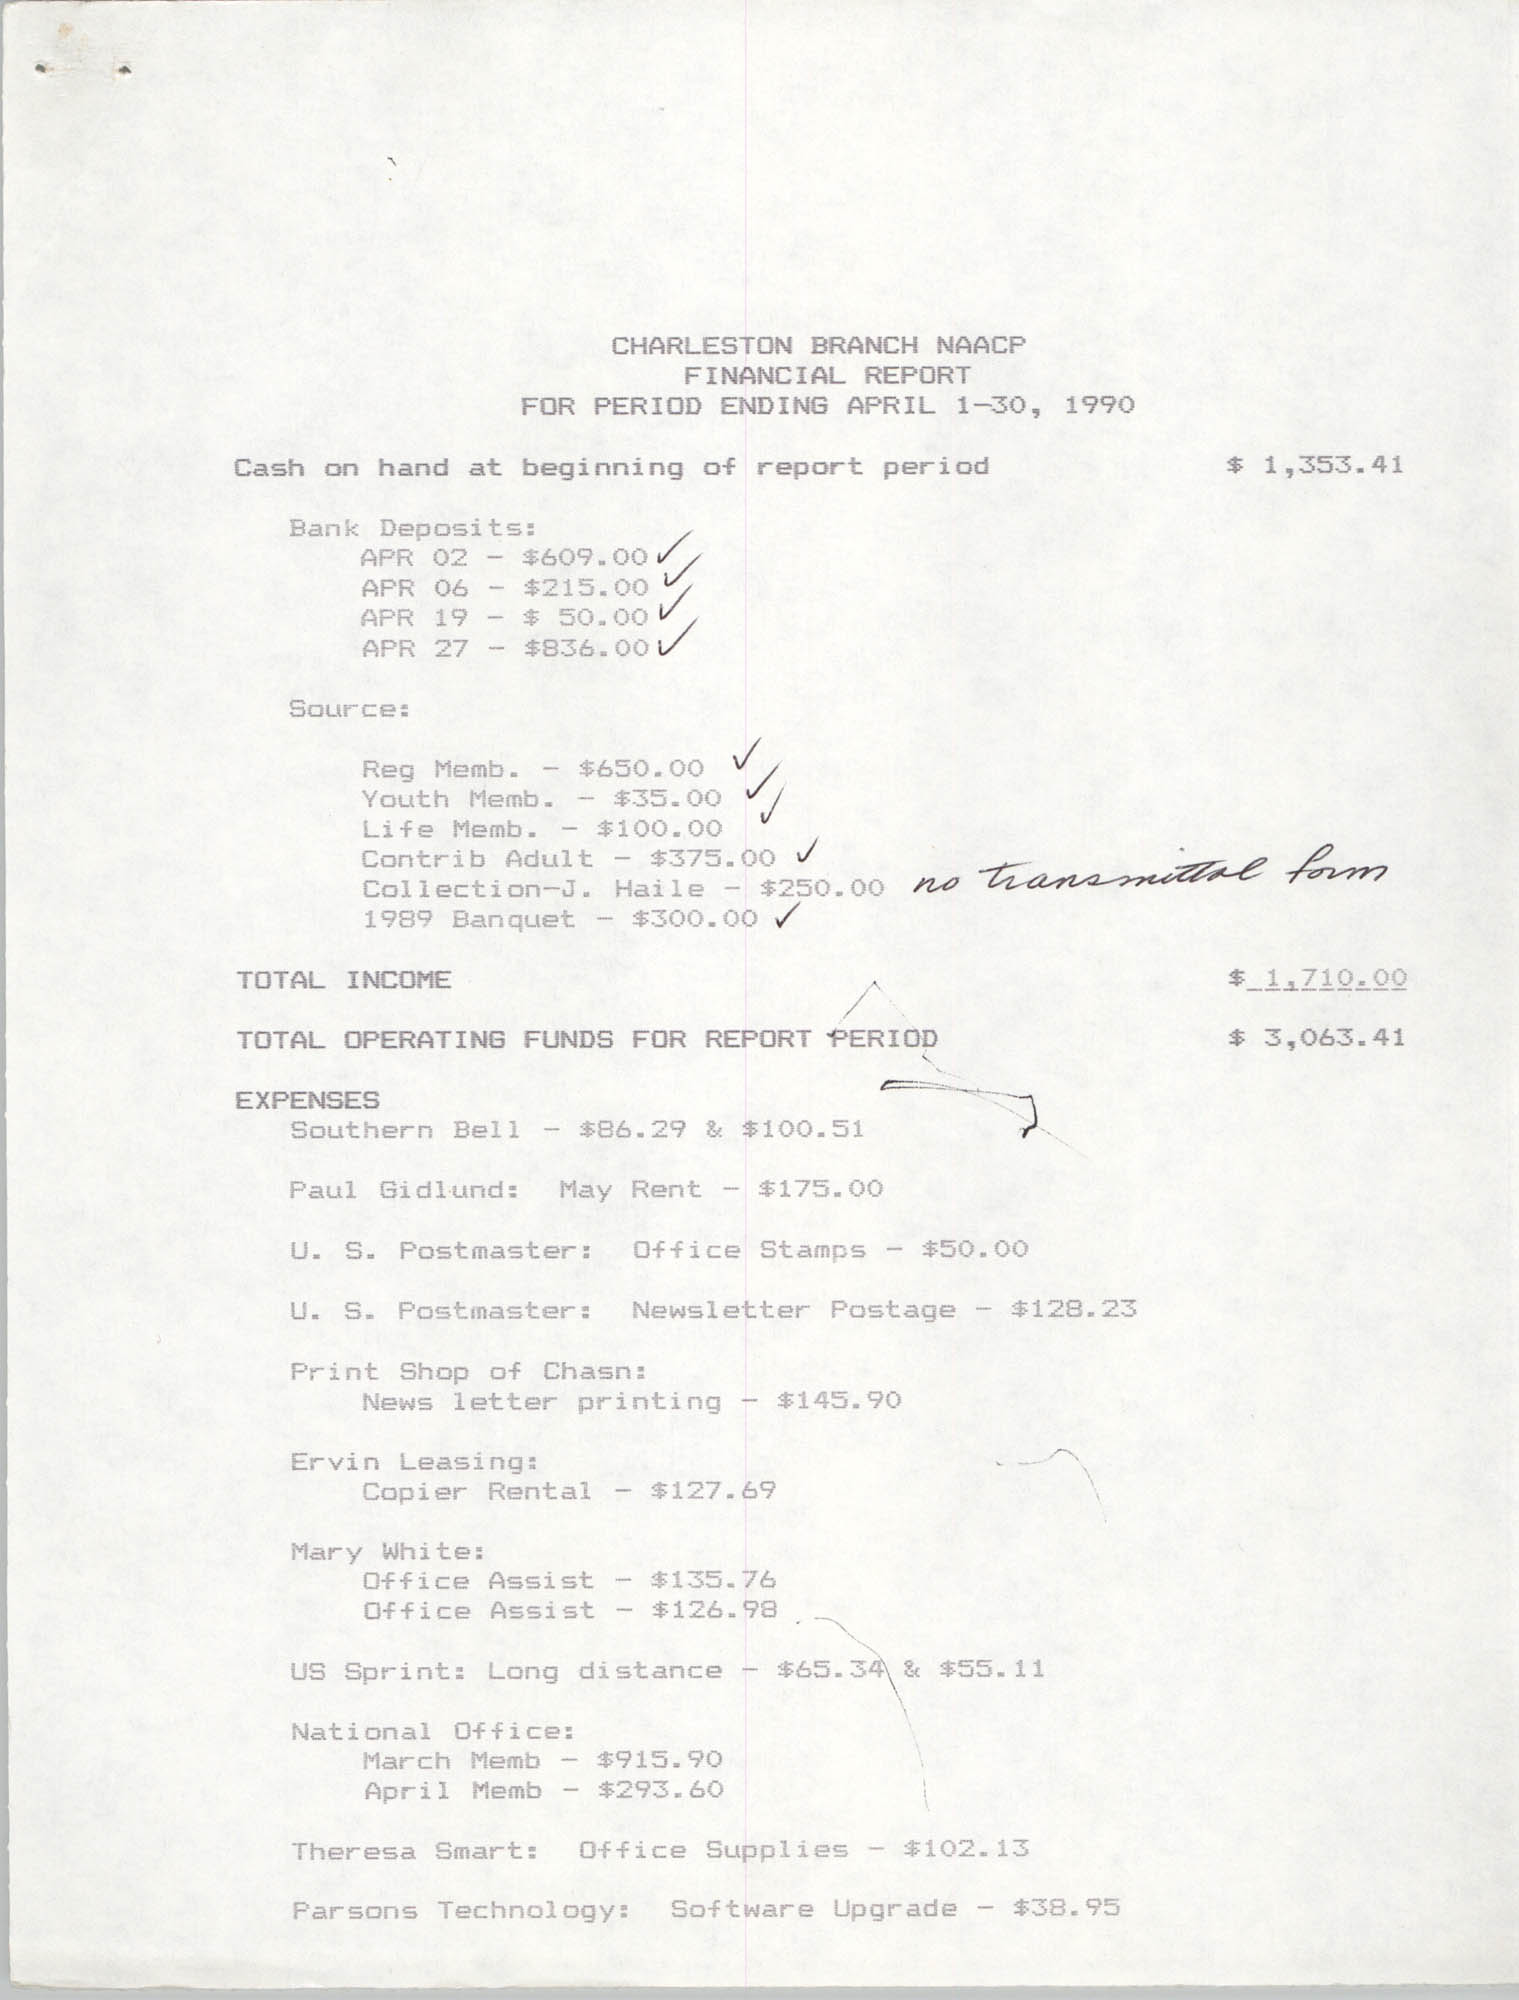 Charleston Branch of the NAACP Financial Report, April 1990, Page 1